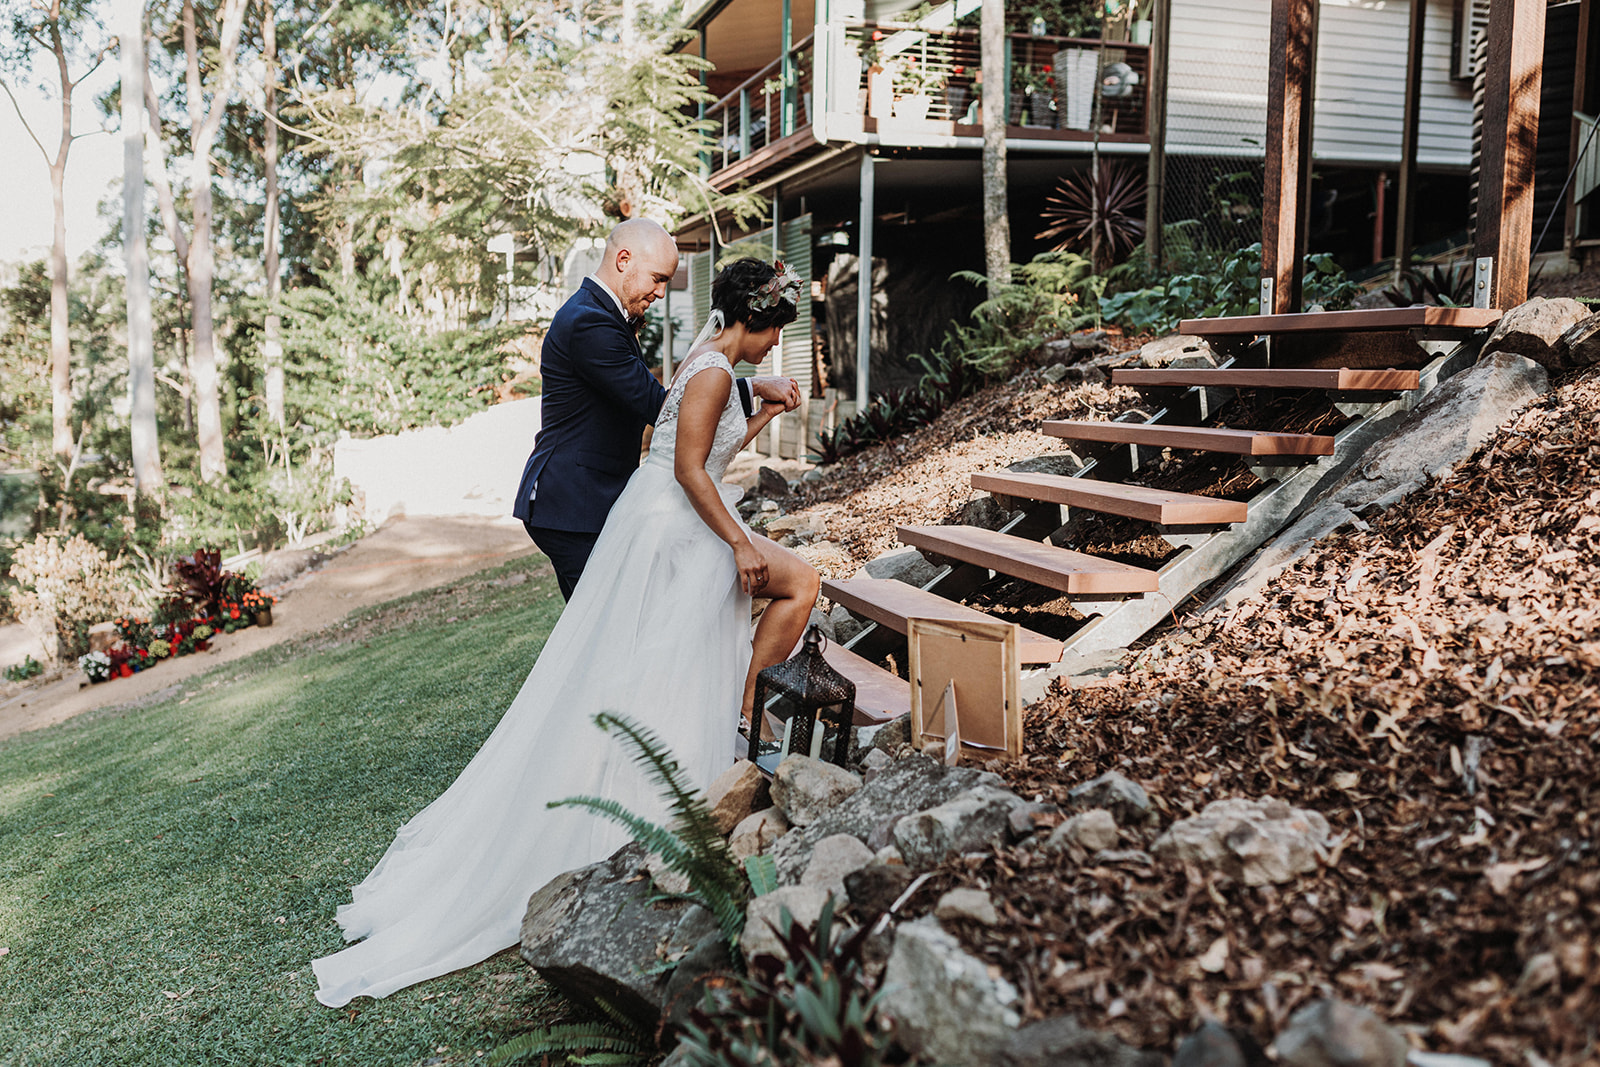 Planning For The Unexpected When Your Wedding Is At Home